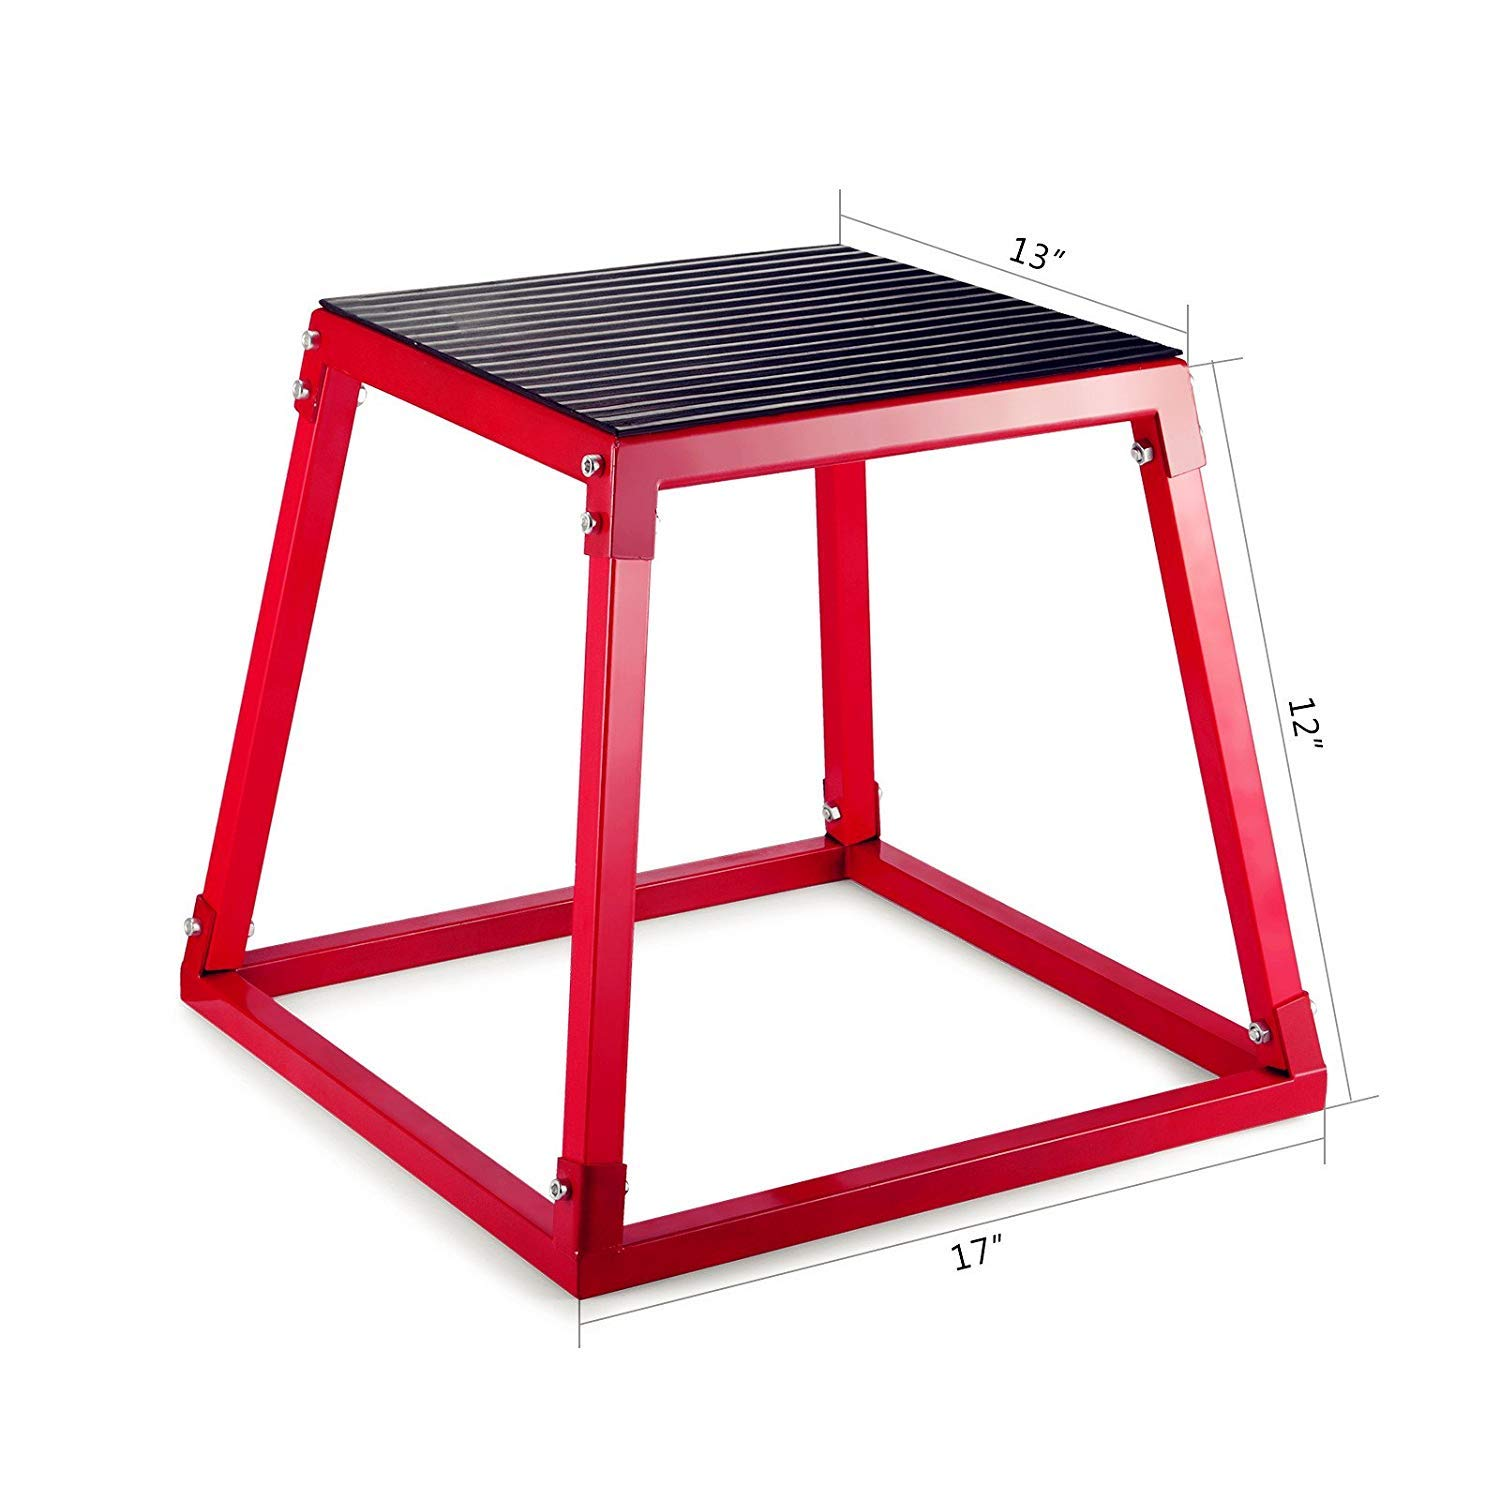 popsport Plyometric Platform Box 12/18/24/30 Inch Fitness Exercise Jump Box Step Plyometric Box Jump for Exercise Fit Training (red, 12inch)